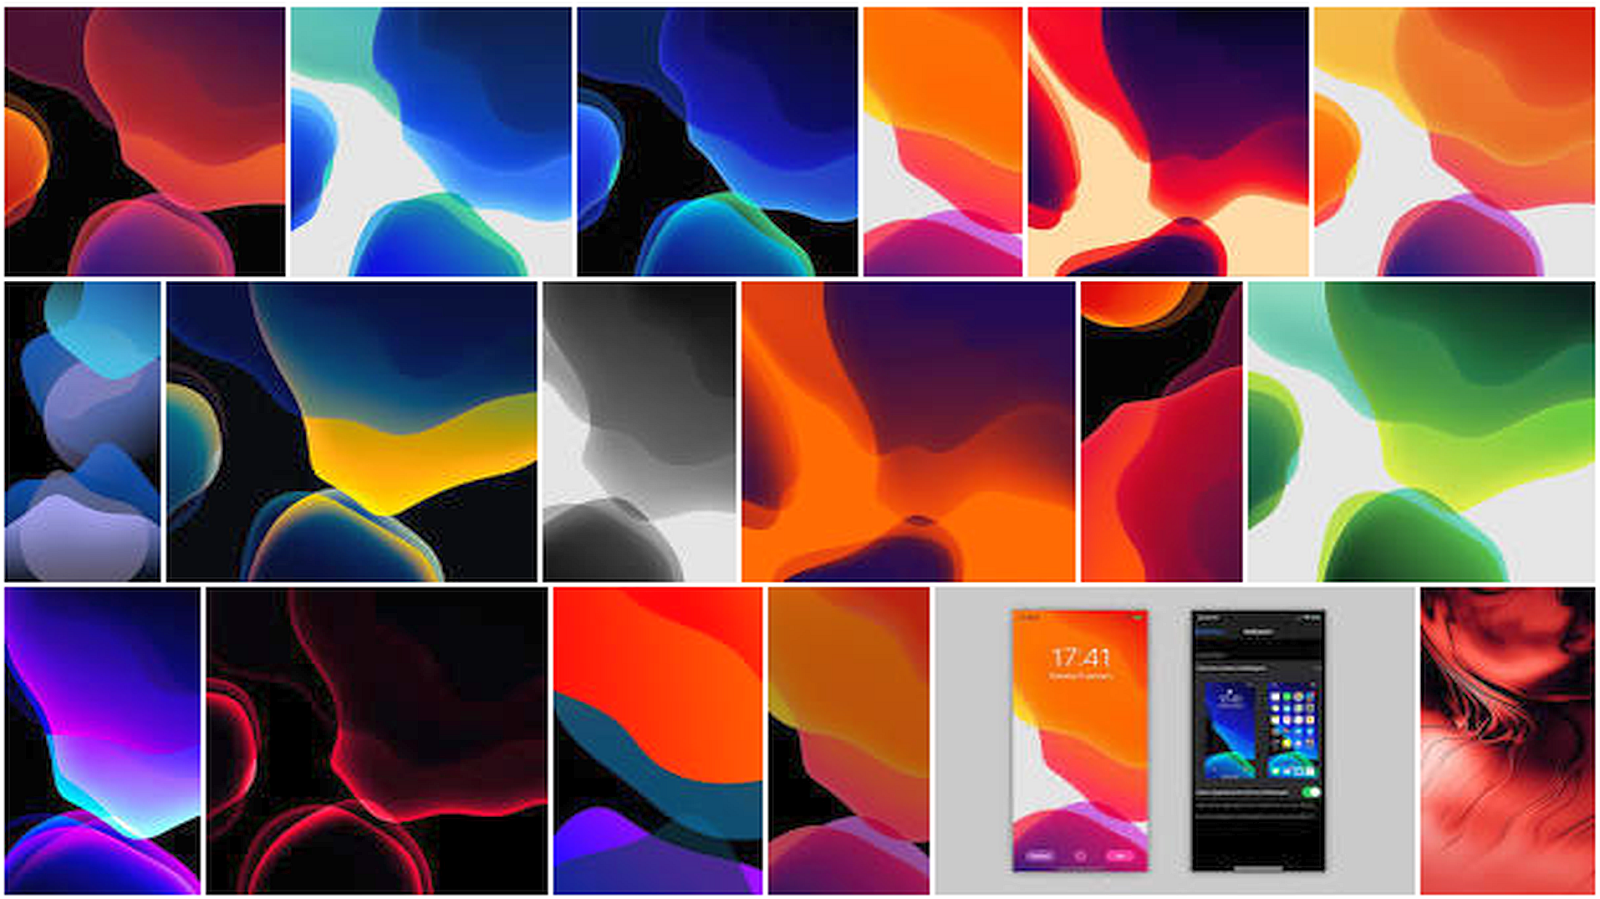 Iphone 11 Iphone 11 Pro And Iphone 11 Pro Max Live Wallpapers Svm Houses